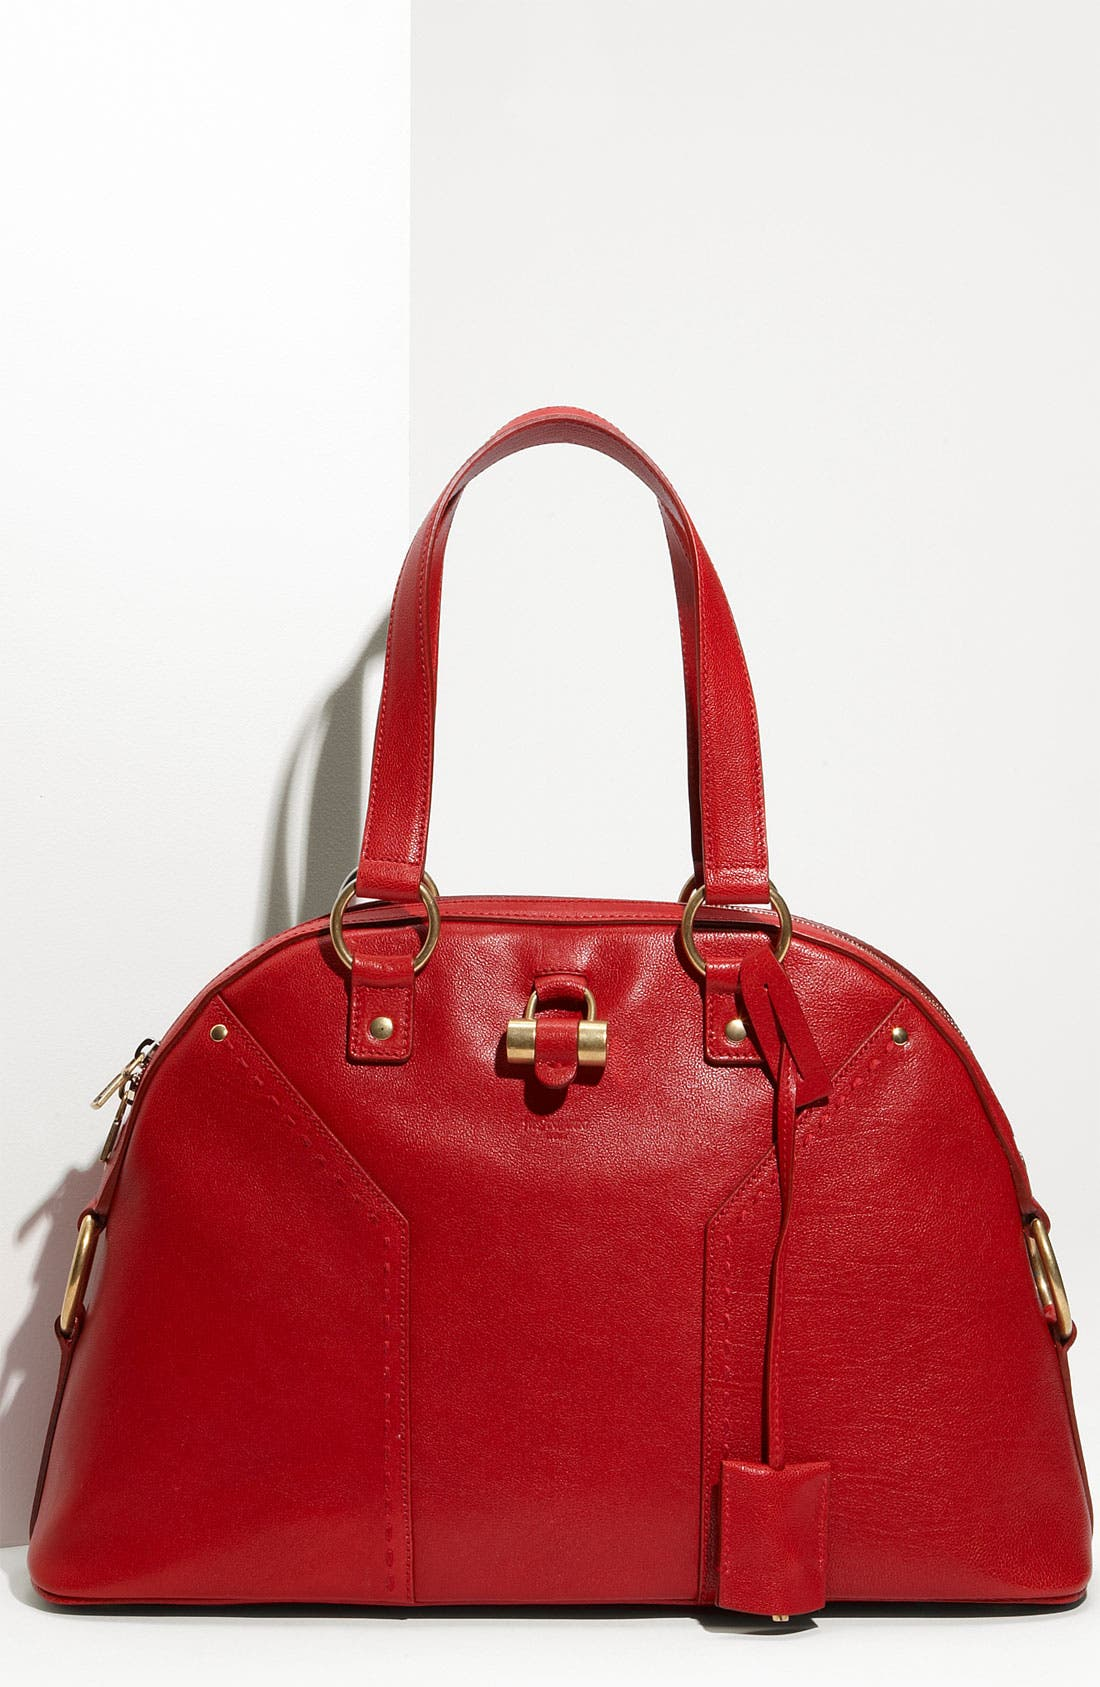 Main Image - Yves Saint Laurent 'Muse - Large' Leather Dome Satchel